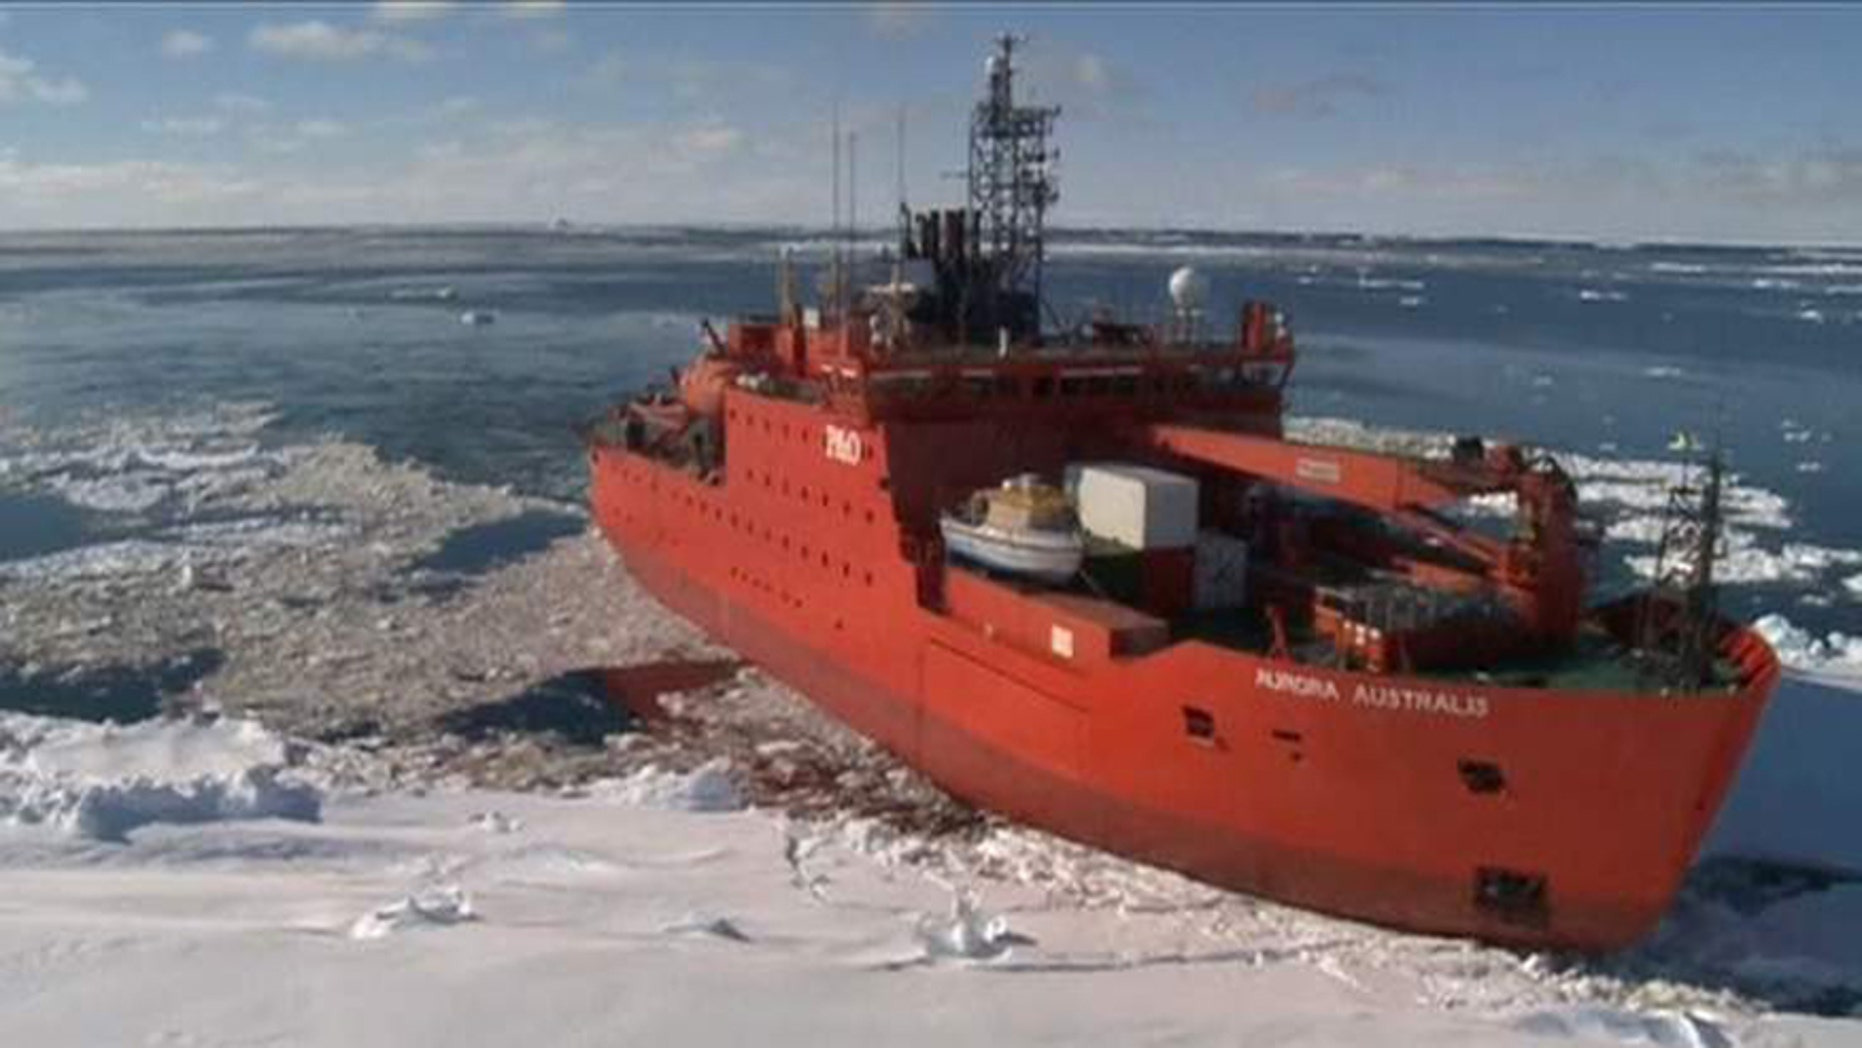 37 people rescued from stranded Australian icebreaker ship